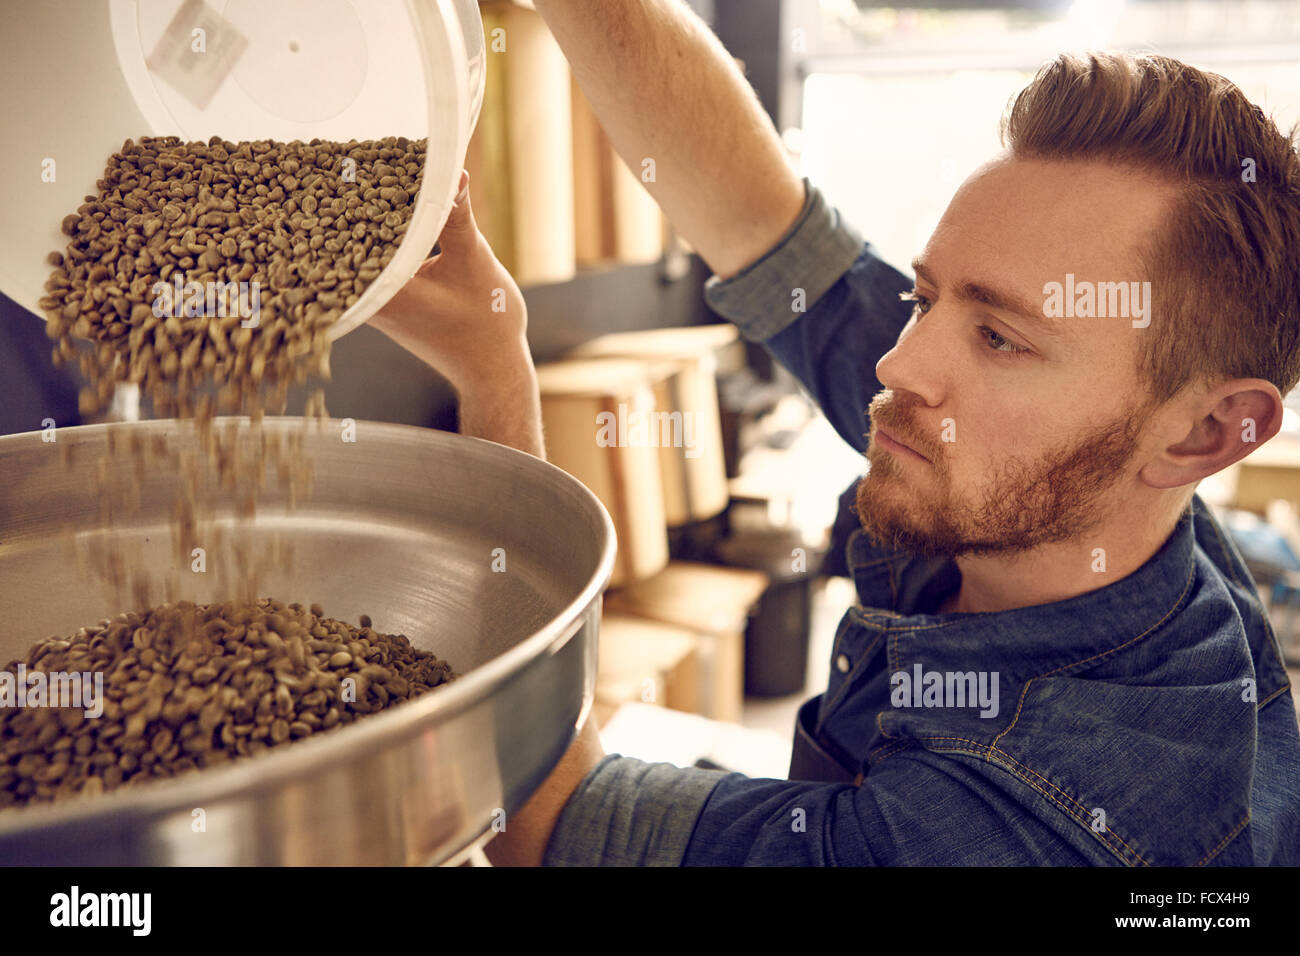 Man pouring coffee beans into a roasting machine - Stock Image